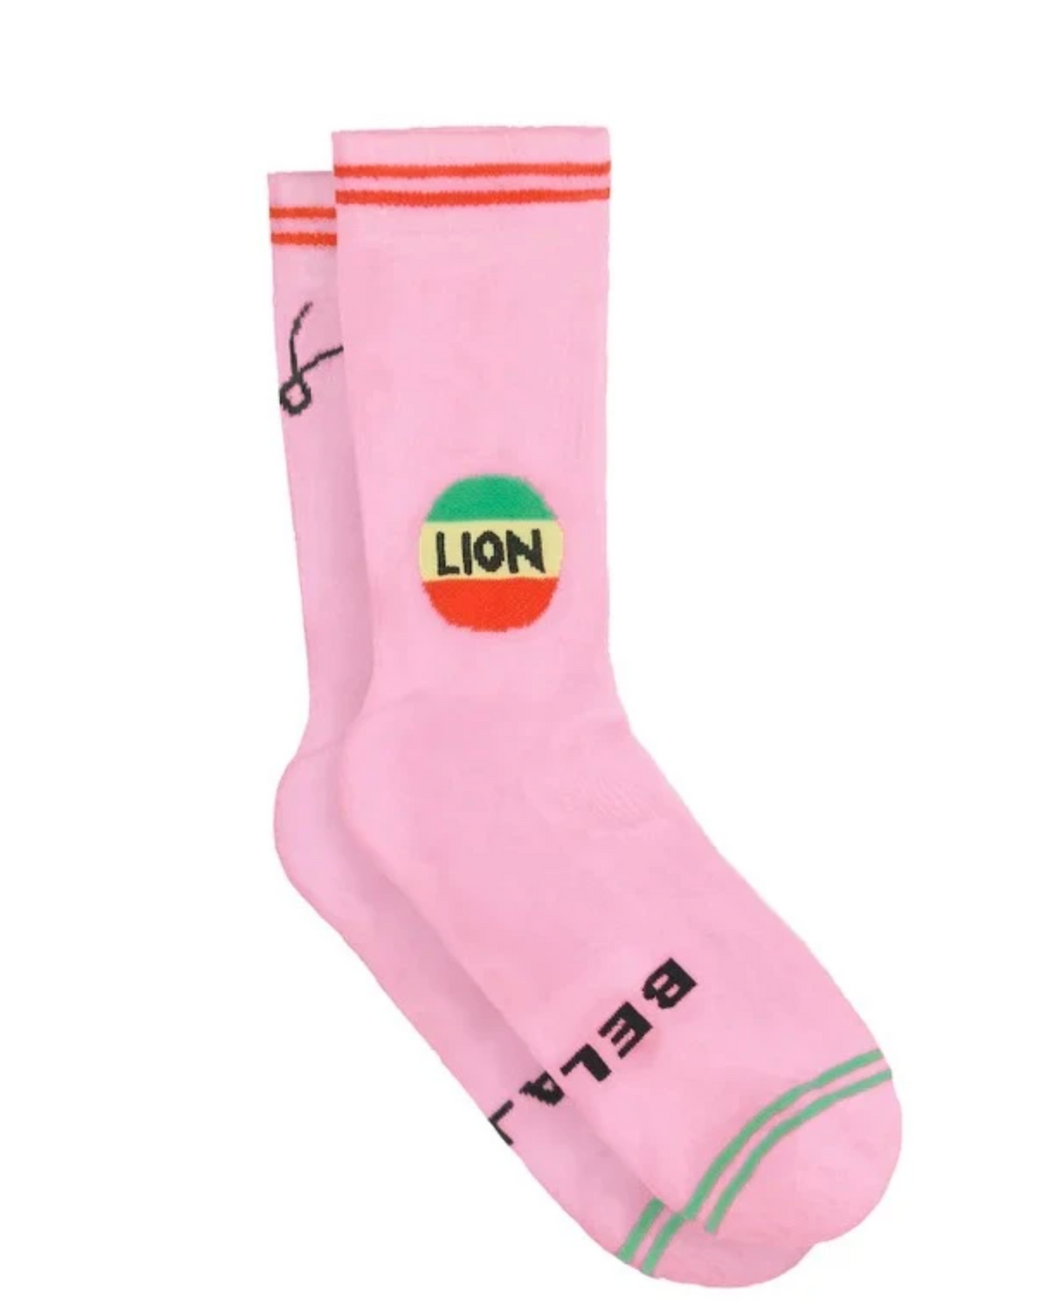 Lion Cotton Socks Pink